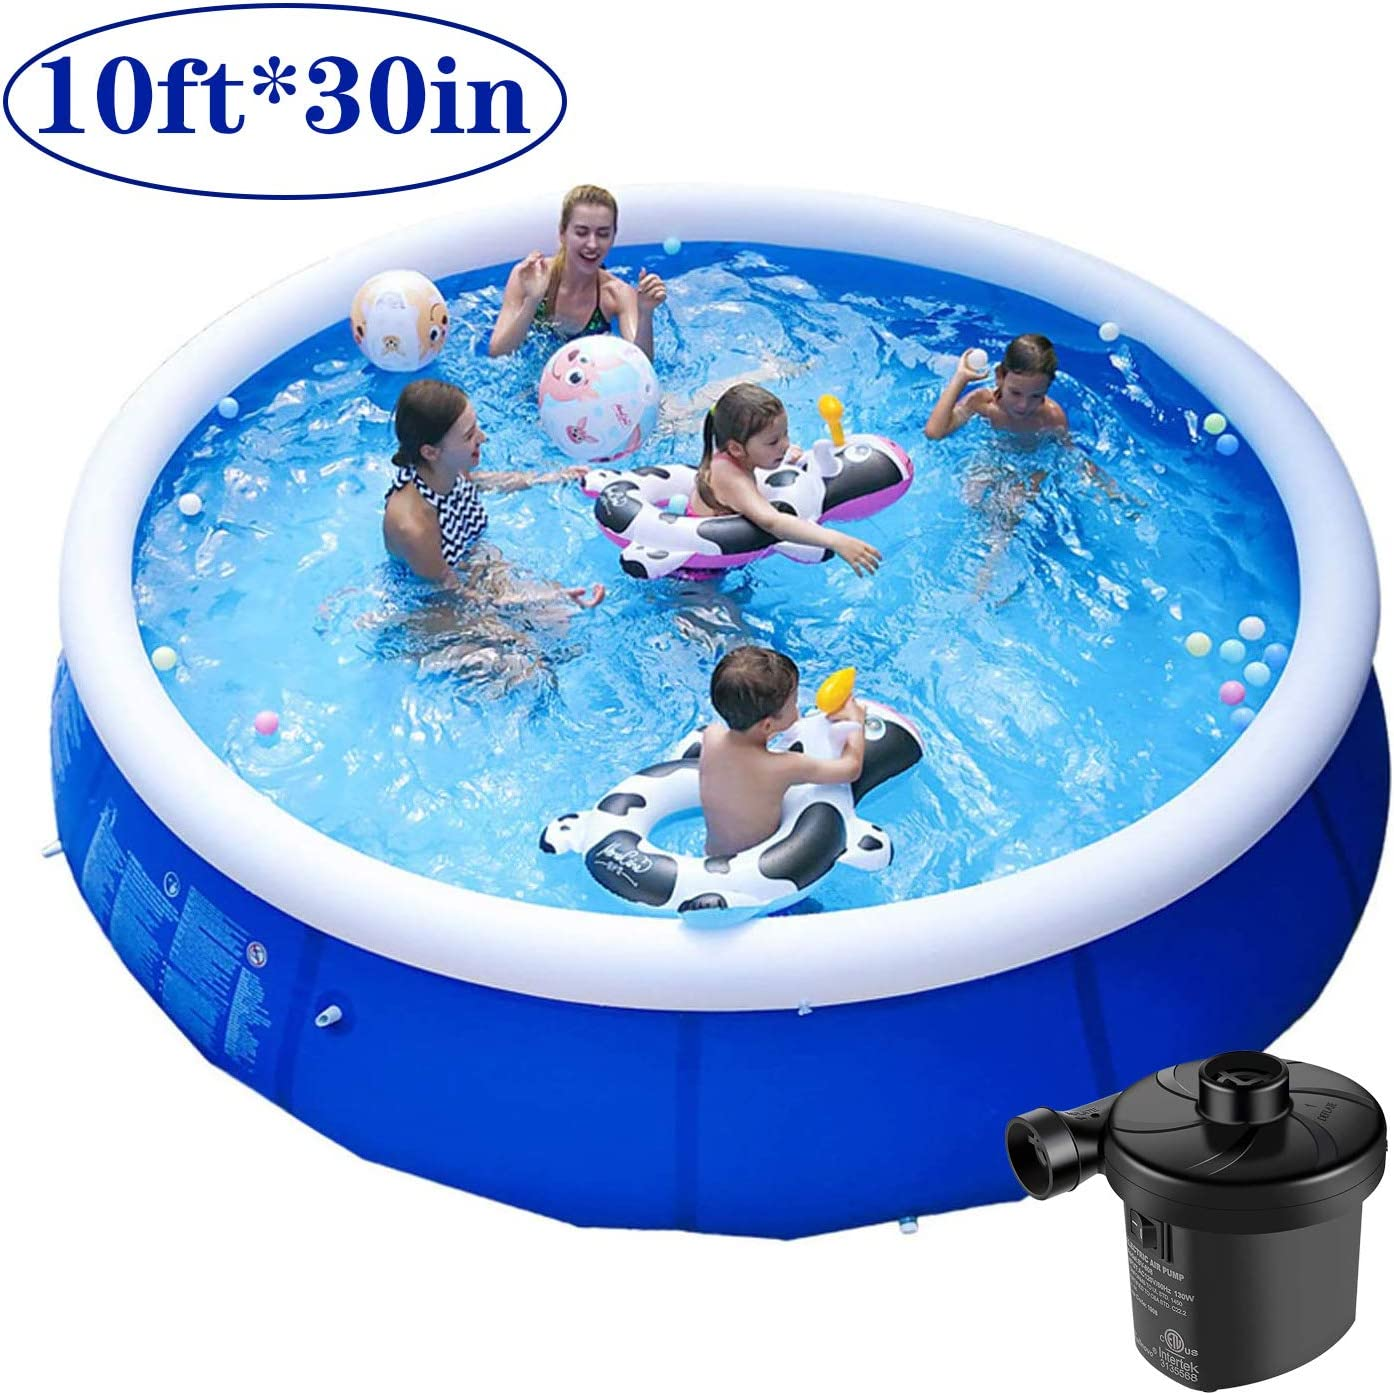 13-Foot Large Family Swimming Pool Set Inflatable Pool for Kids and Adults Full-Size Inflatable Above Ground Pool Summer Water Party Swimm Pool with Filter Pump